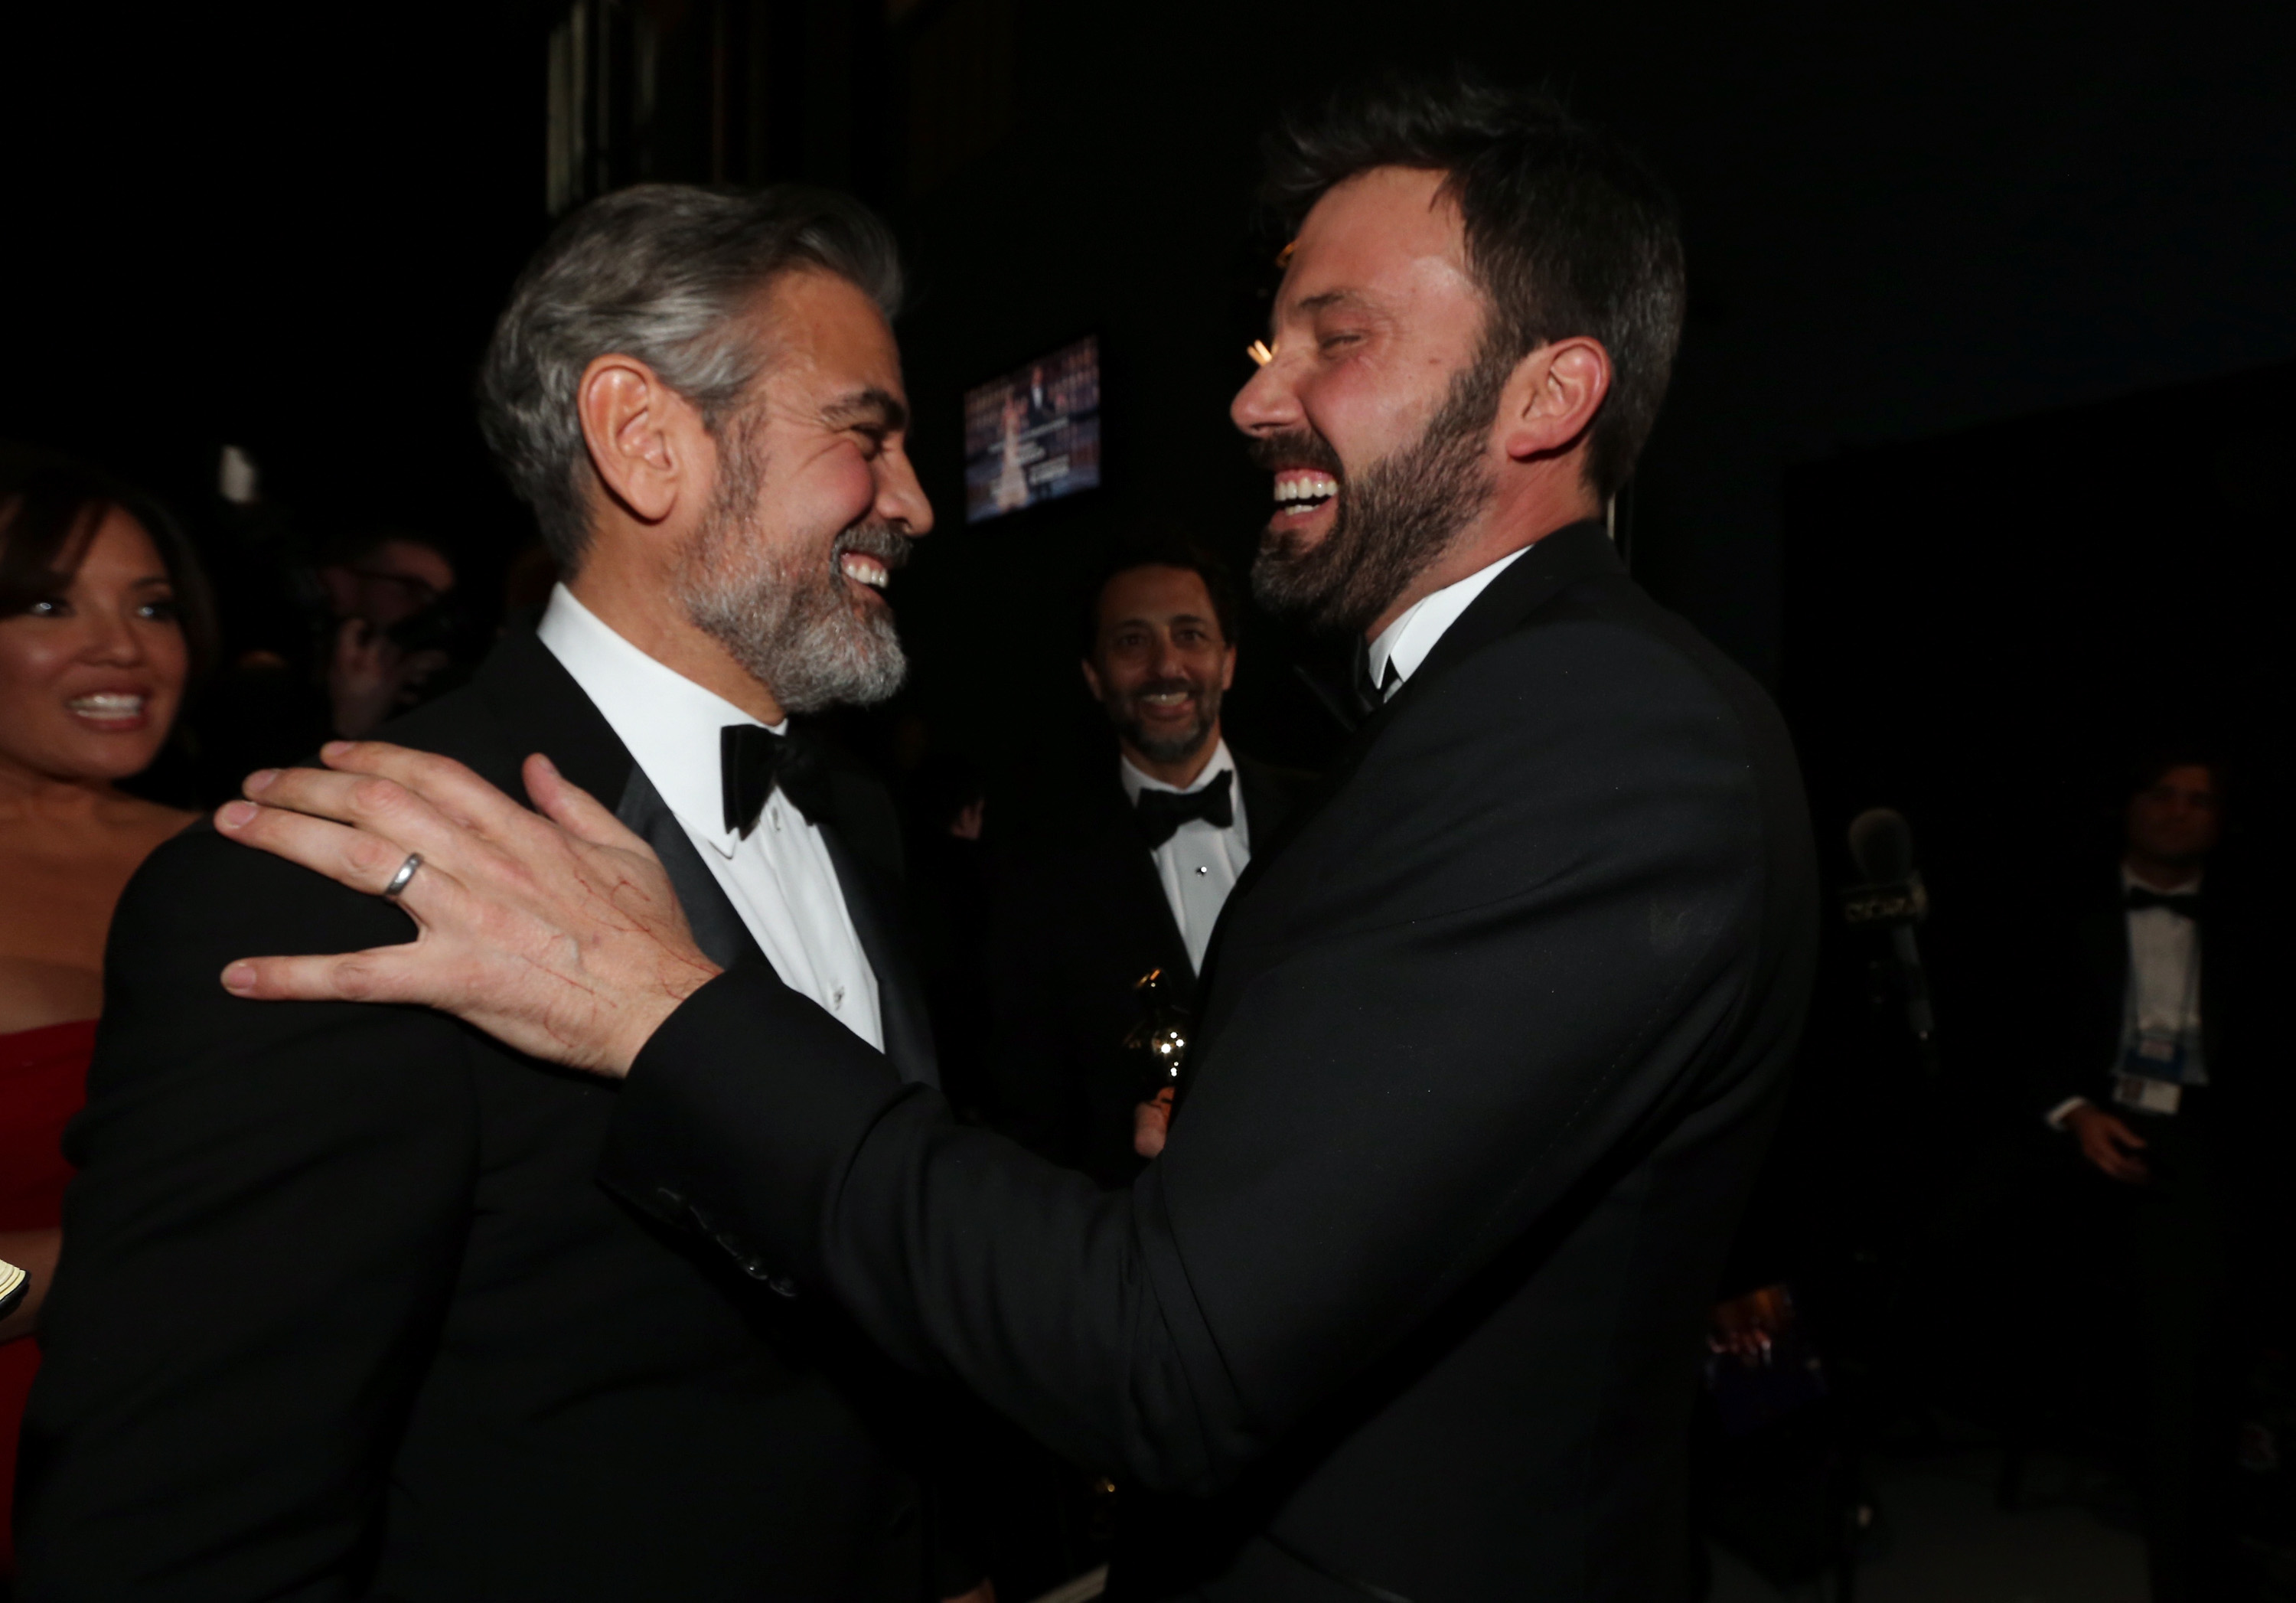 Ben Affleck and George Clooney backstage at the 2013 Oscars.